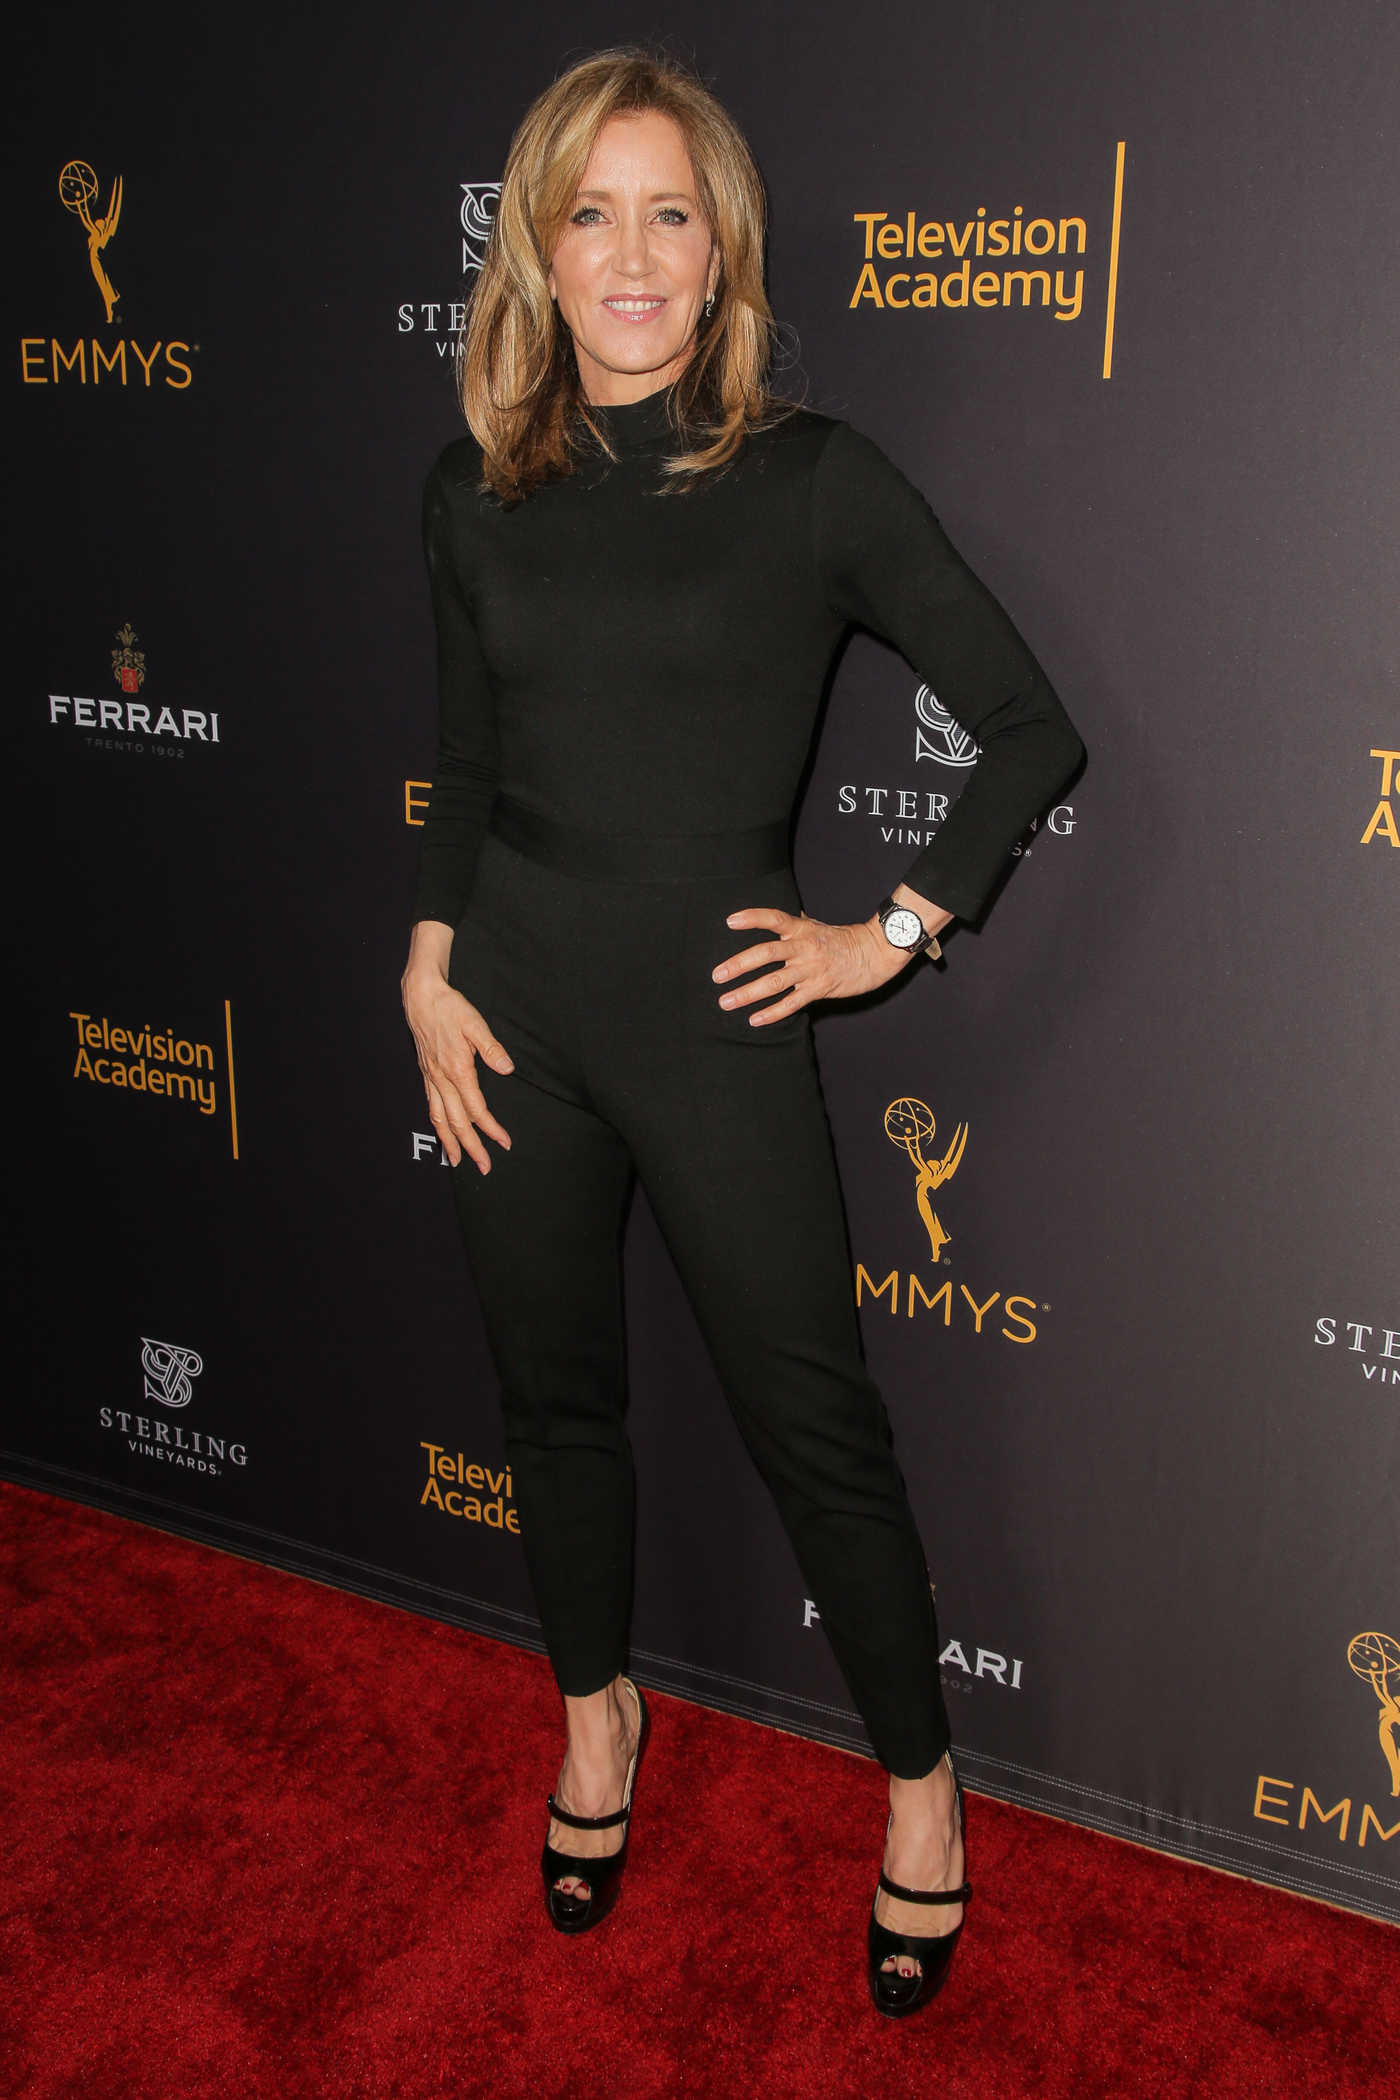 Felicity Huffman at EMMY Performers Peer Group Celebration in Los Angeles 08/22/2016